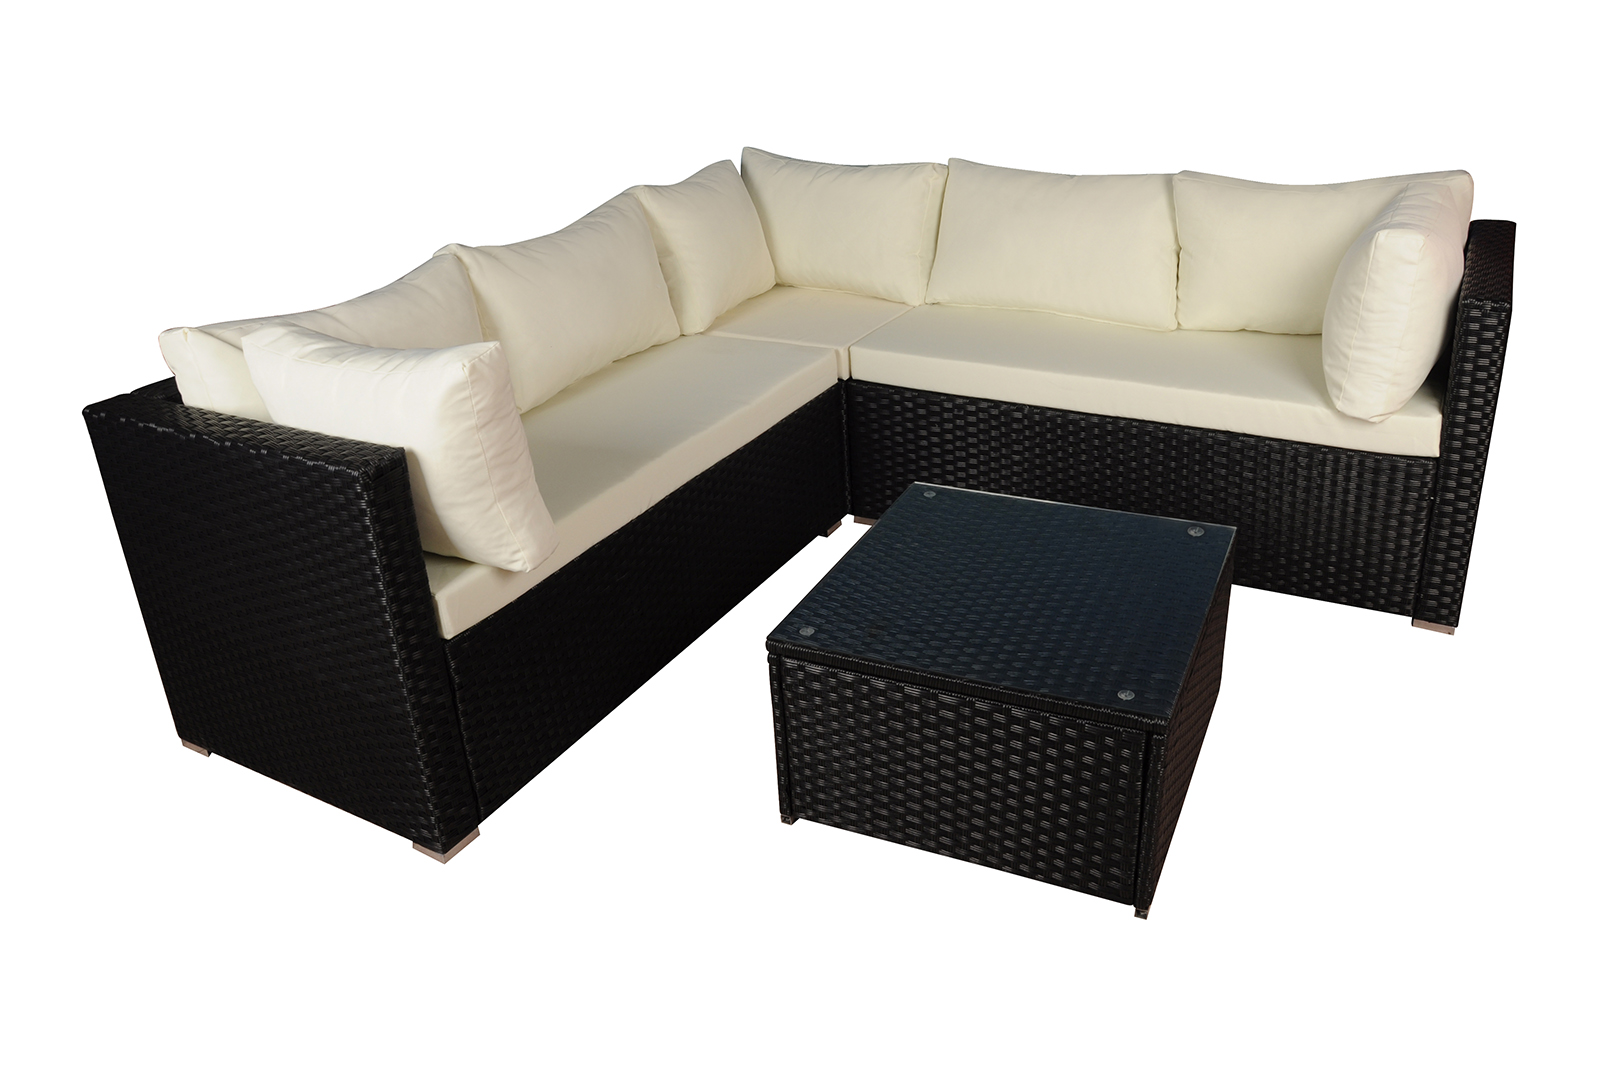 Rattan Sofa Instructions Modern Outdoor Garden Sectional Set Wicker Sofa Set W